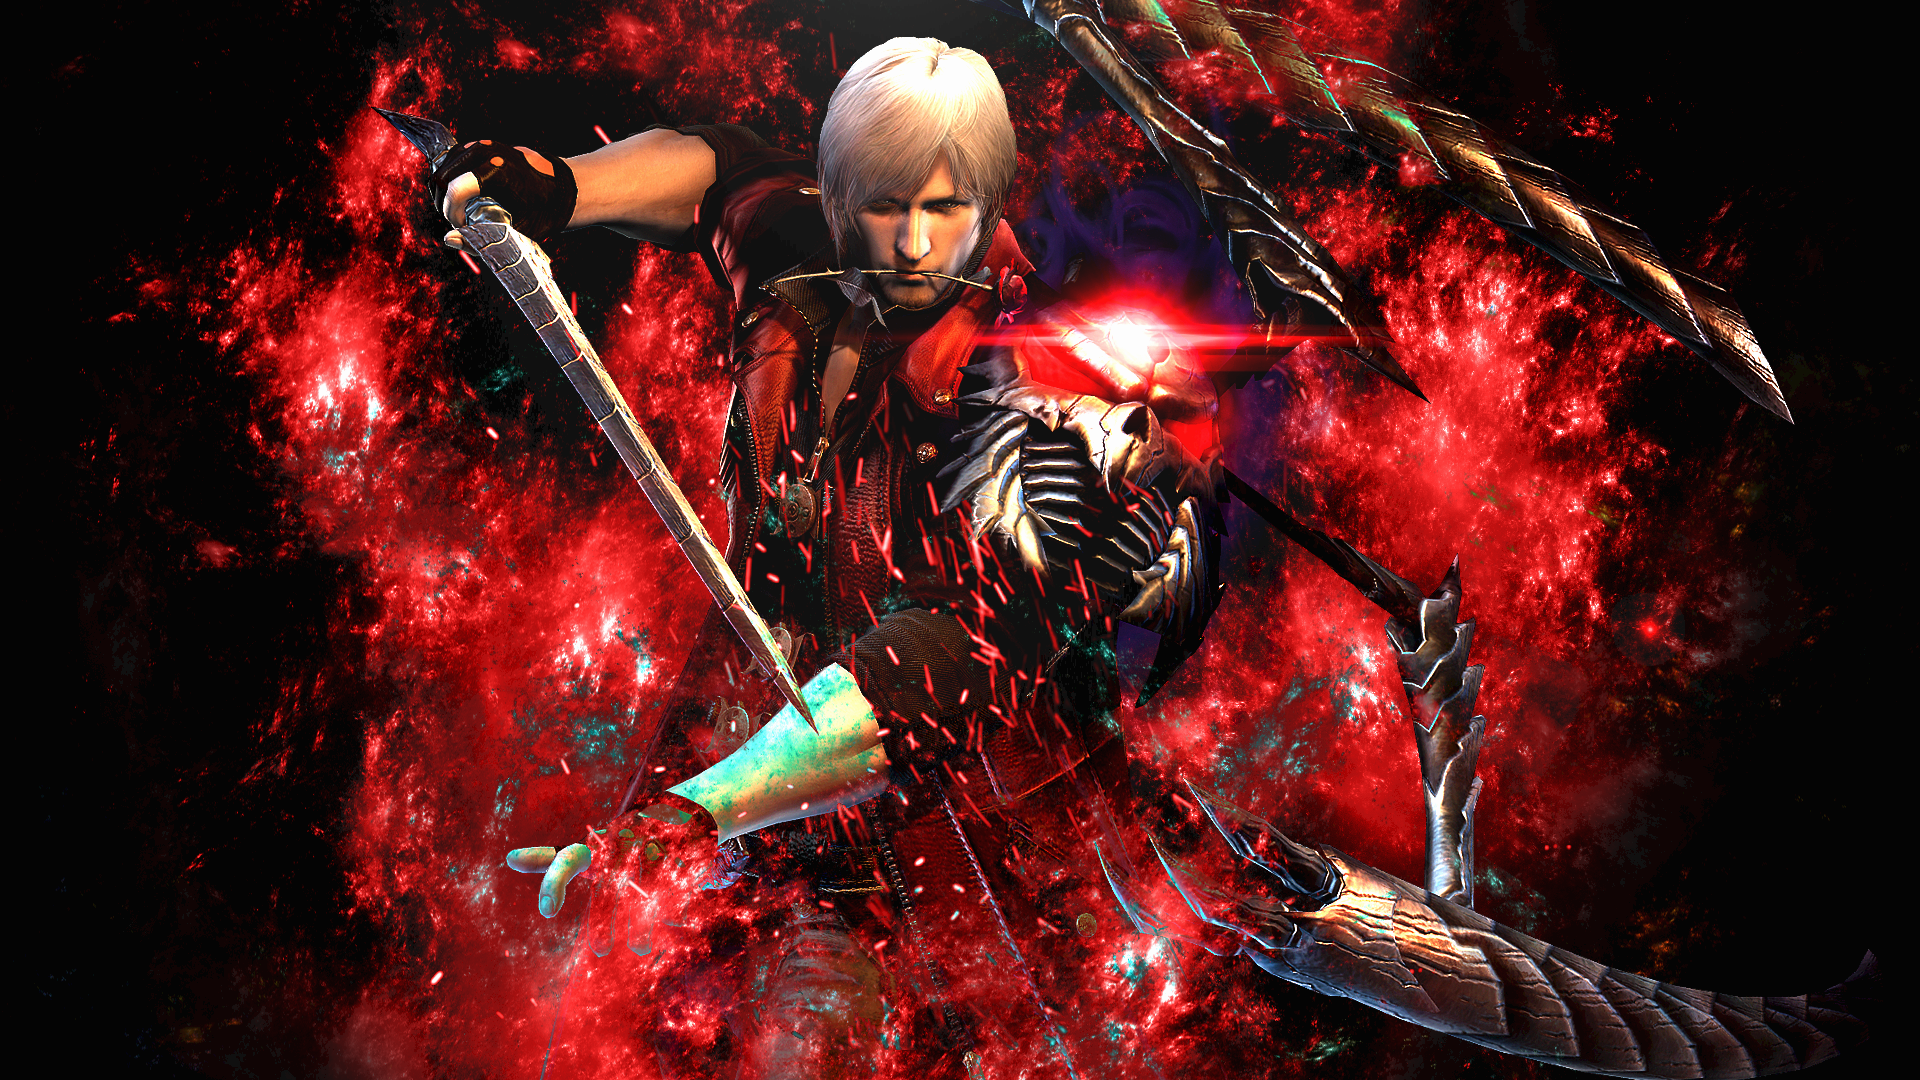 download hd wallpapers of devil may cry